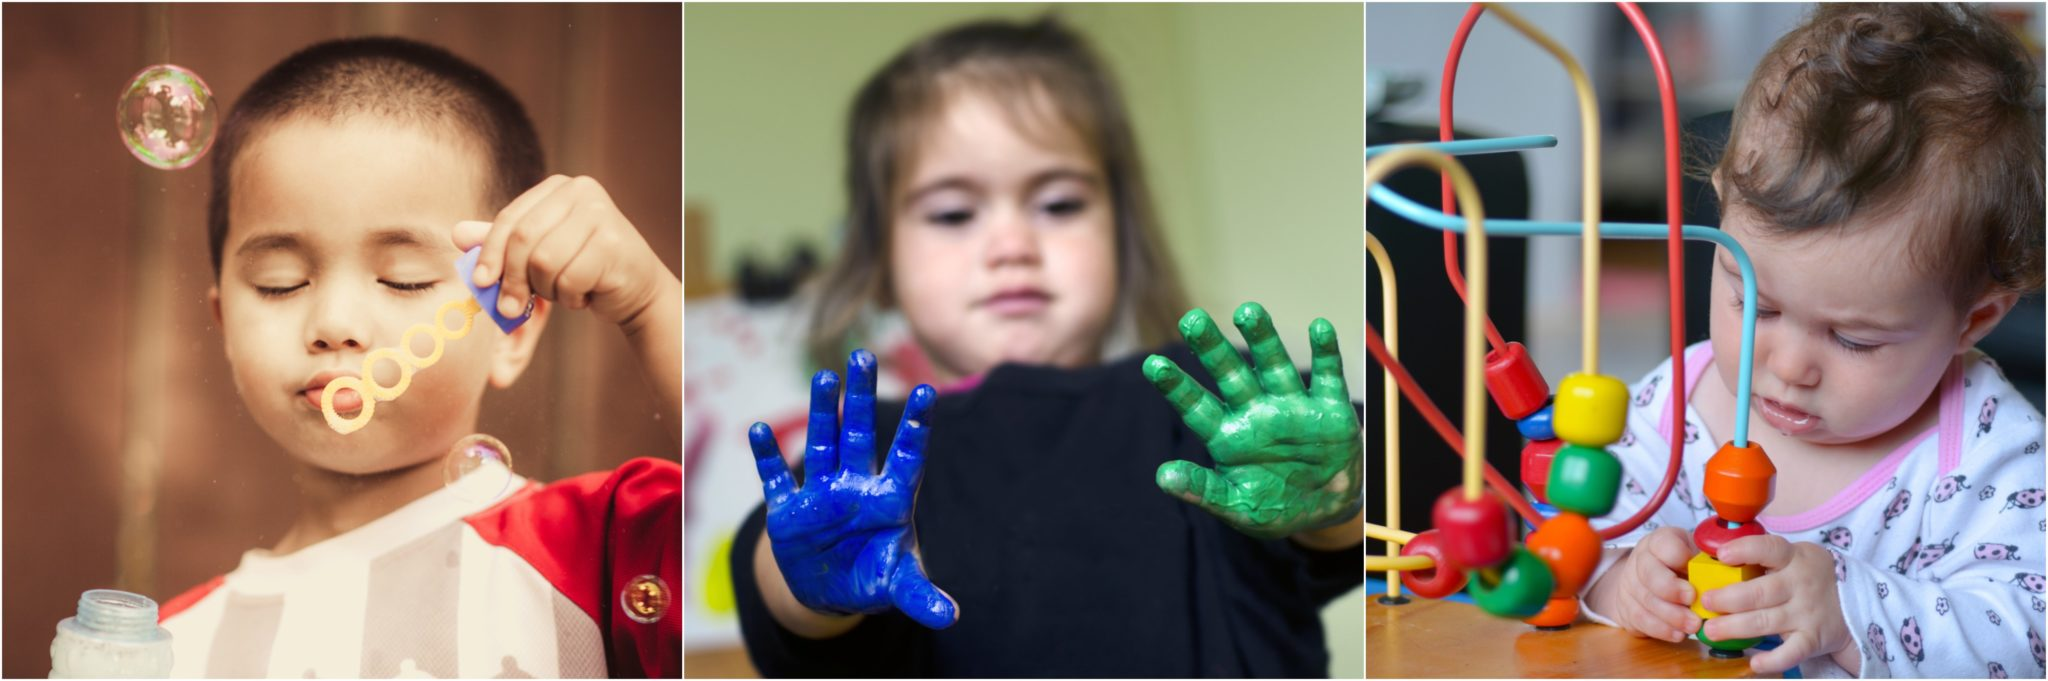 boy blowing bubbles, girl with blue and green paint on hands and child playing with toy - lots of activity at Timeout playgroup